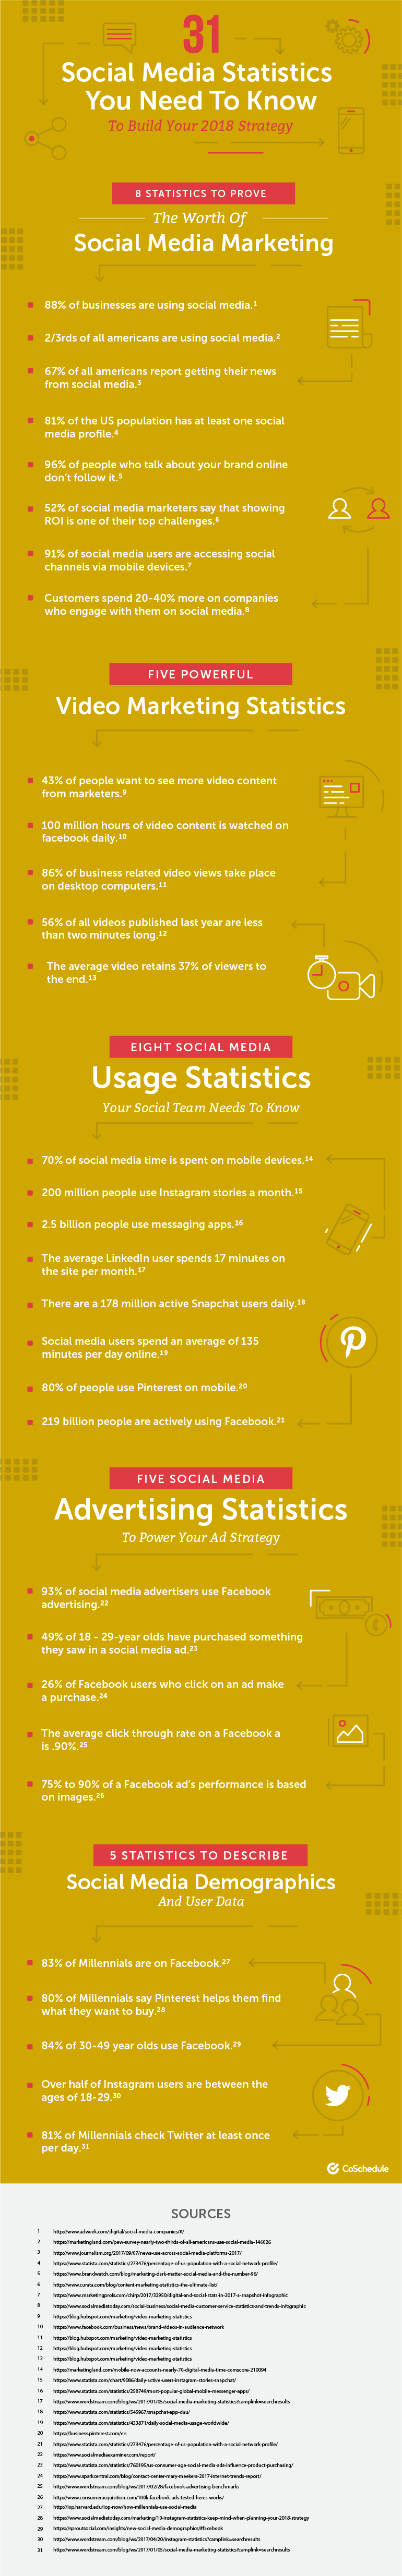 101 Social Media Statistics You Need To Know To Build Your 2018 Strategy - infographic